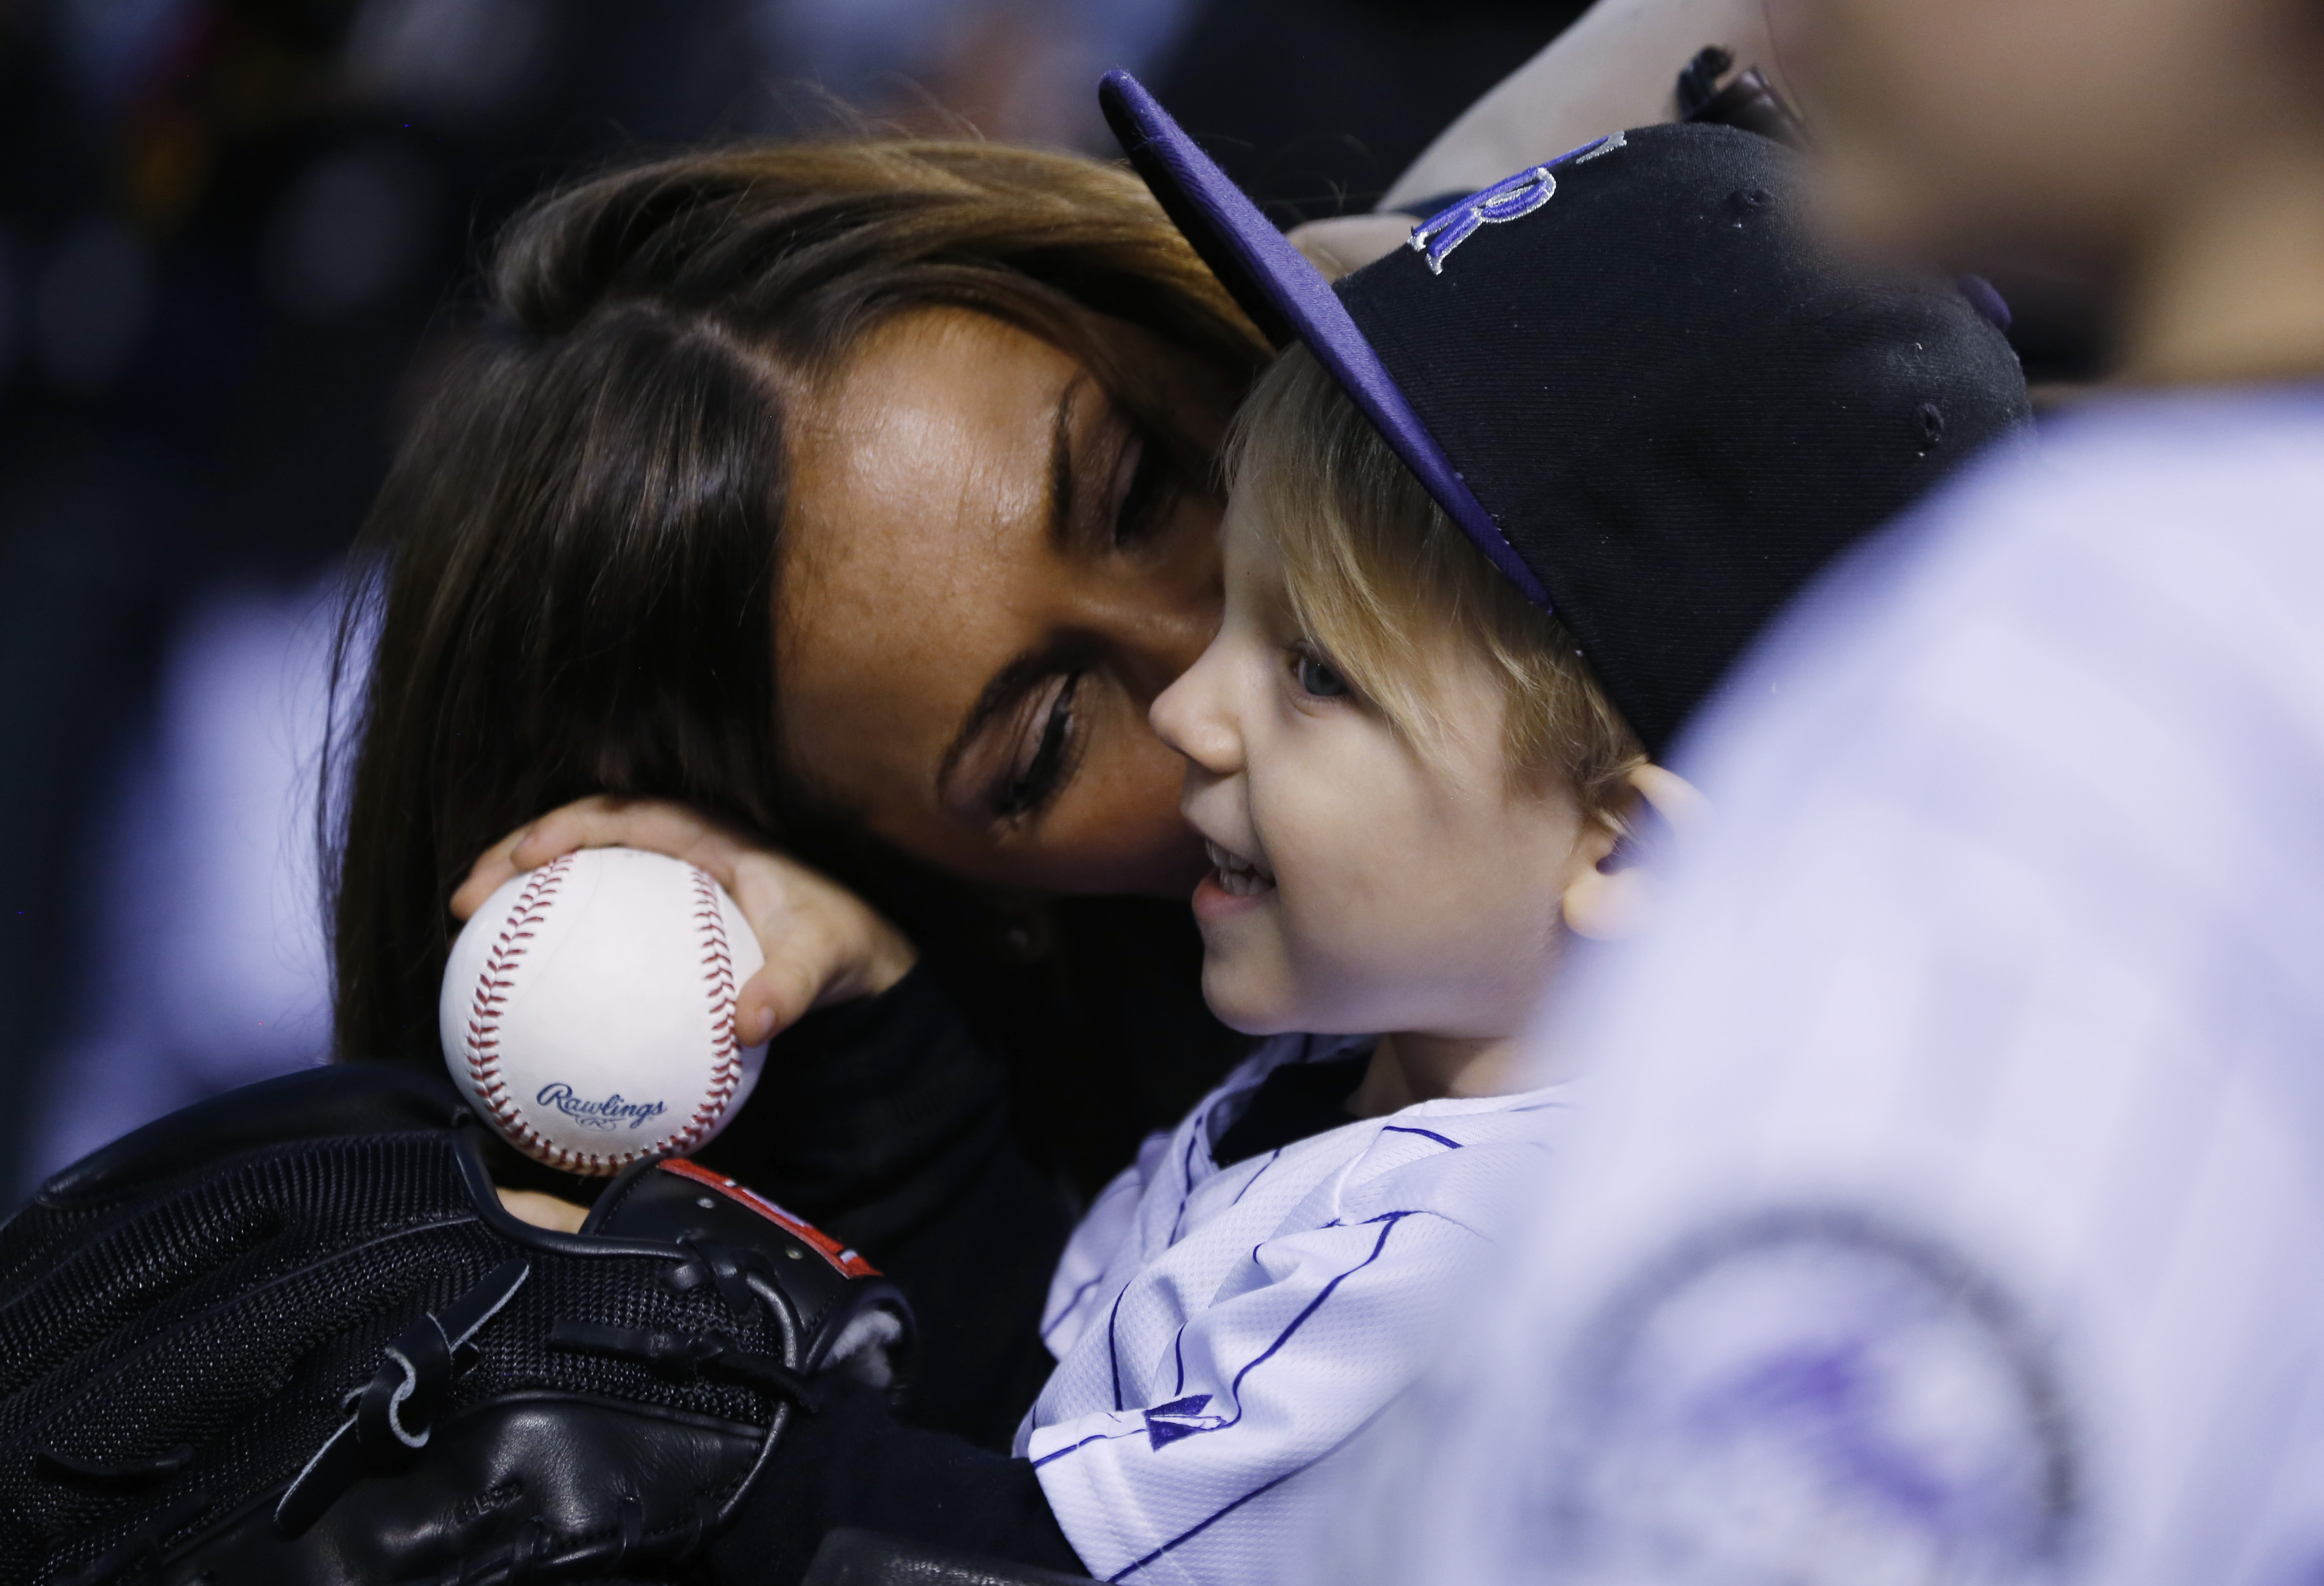 Nicole Axford, back, kisses her 2-year-old son, Jameson, as he waits to throw out the ceremonial first pitch before the Colorado Rockies host the Los Angeles Dodgers in a baseball game Friday, May 8, 2015, in Denver. The little boy, who is the son of Rock